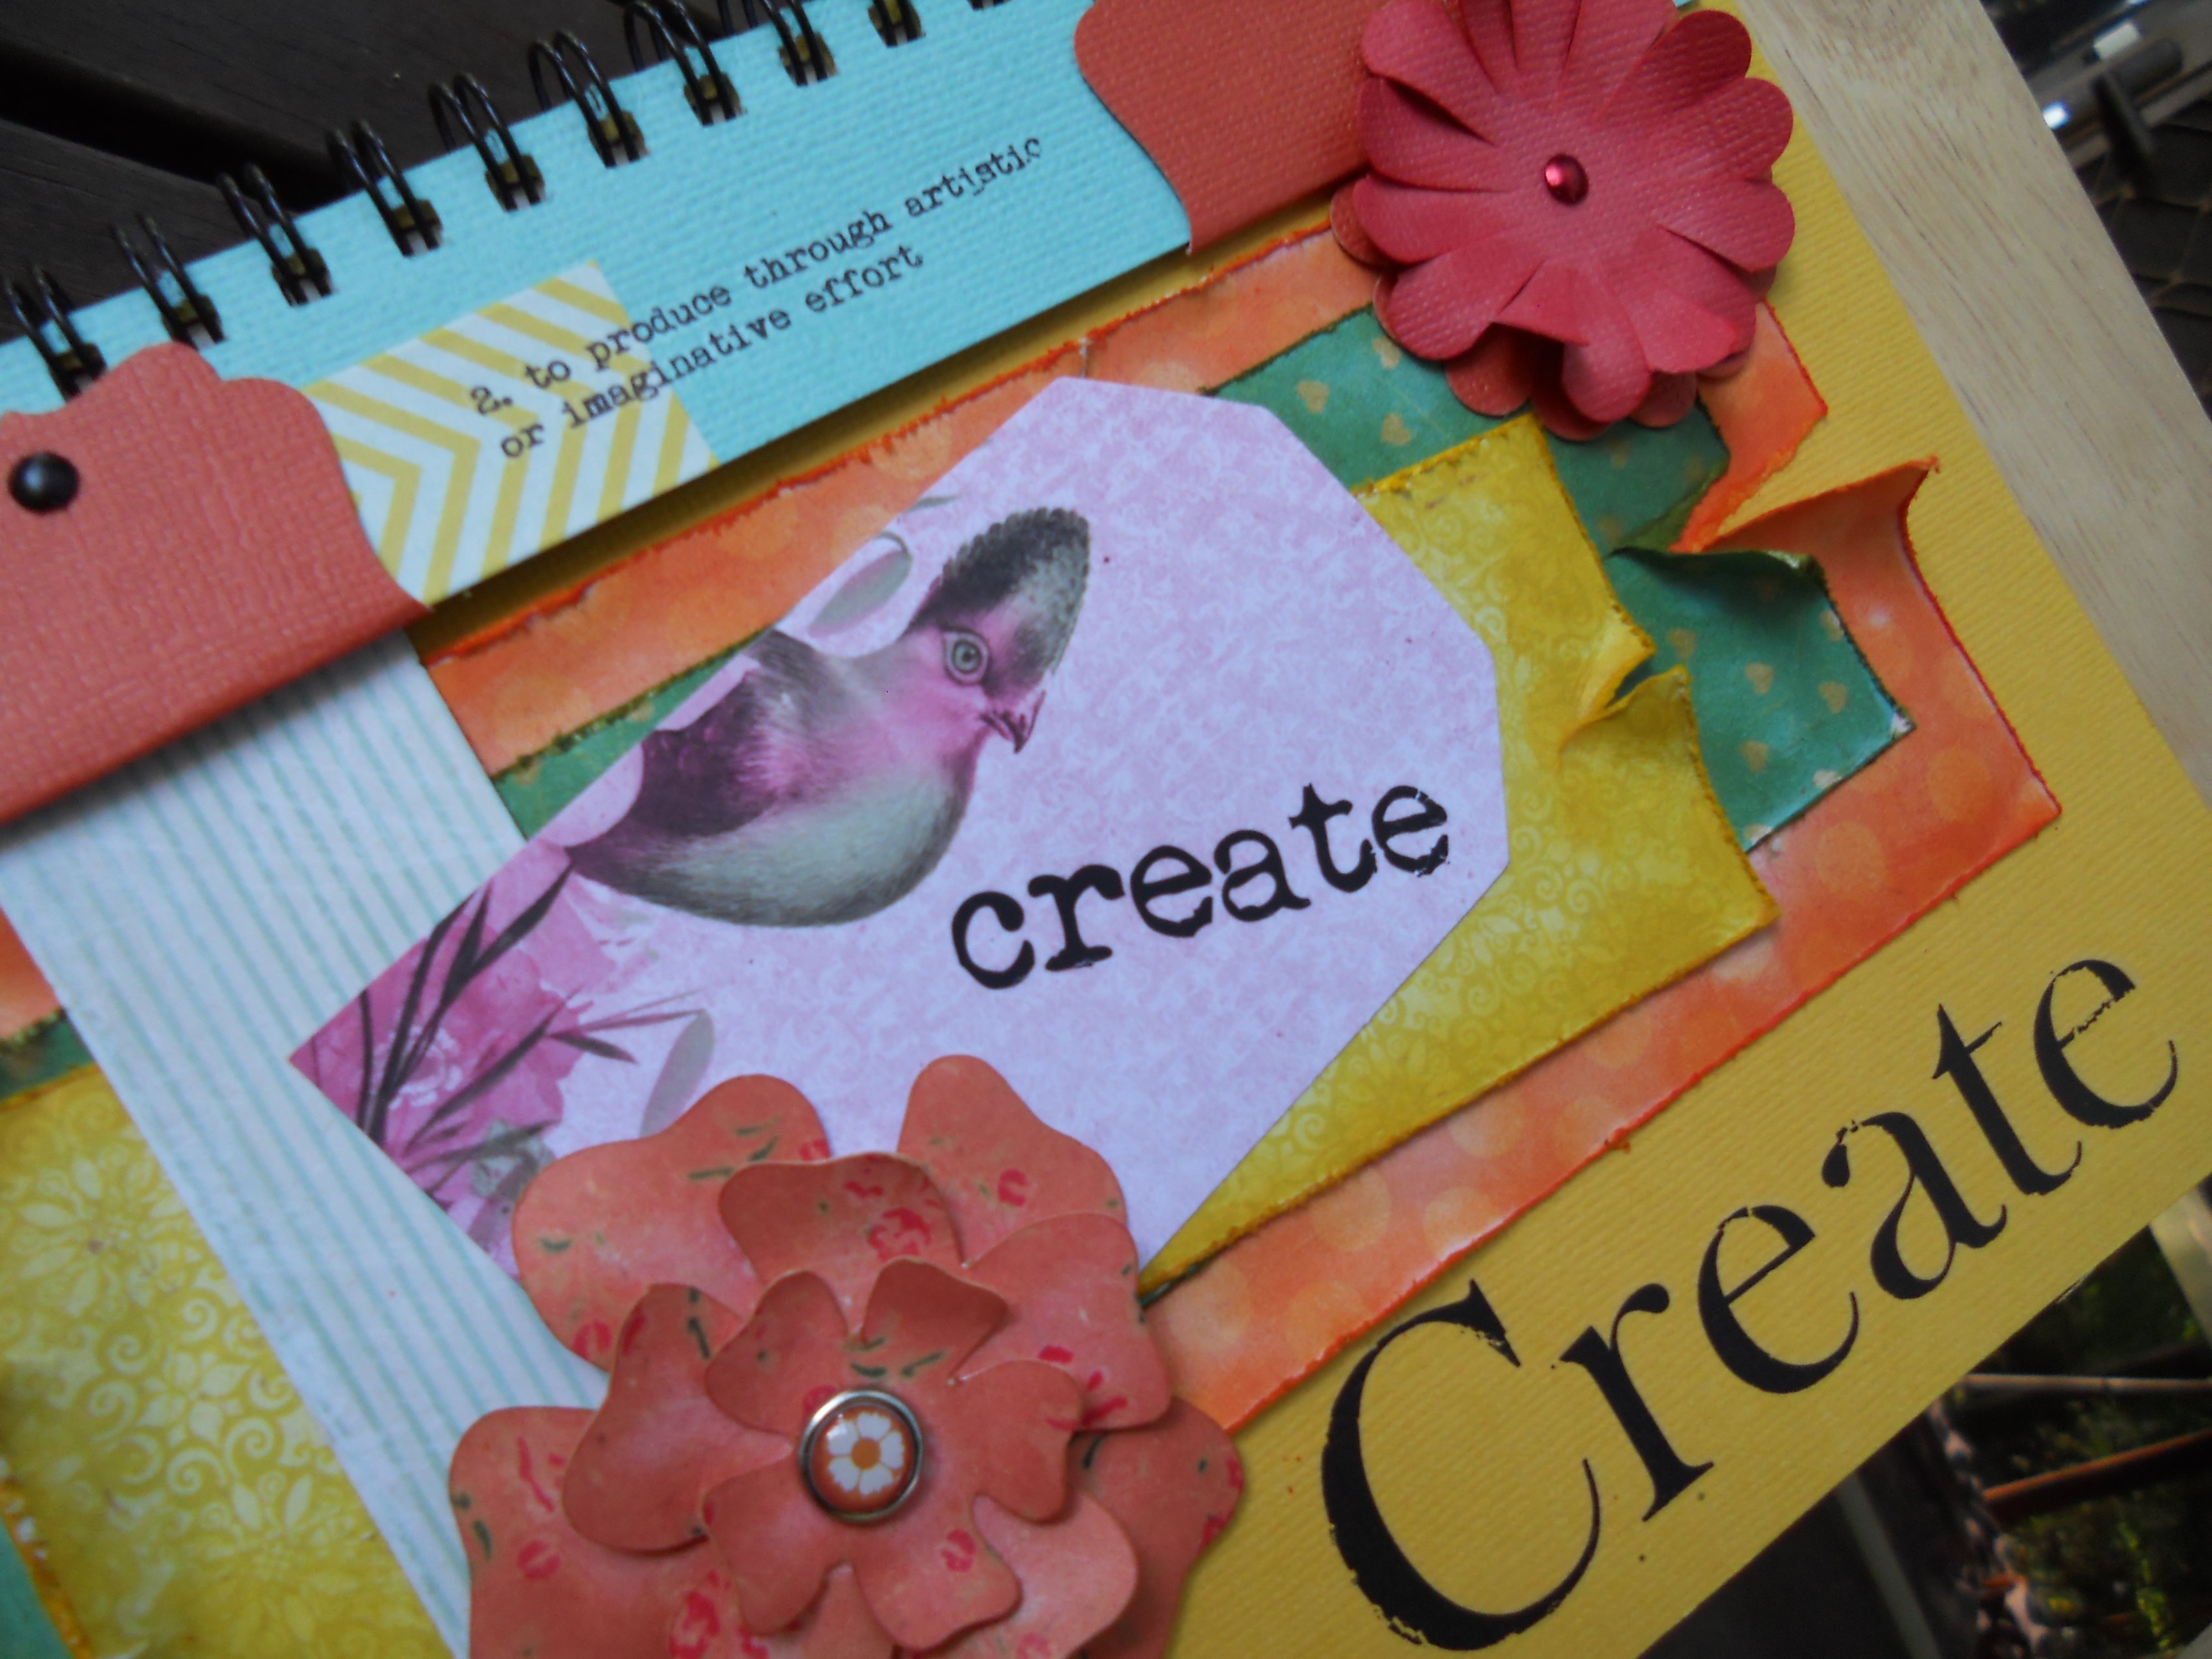 10 Fabulous Creative Ideas For A Project project books marys creative activities 2020